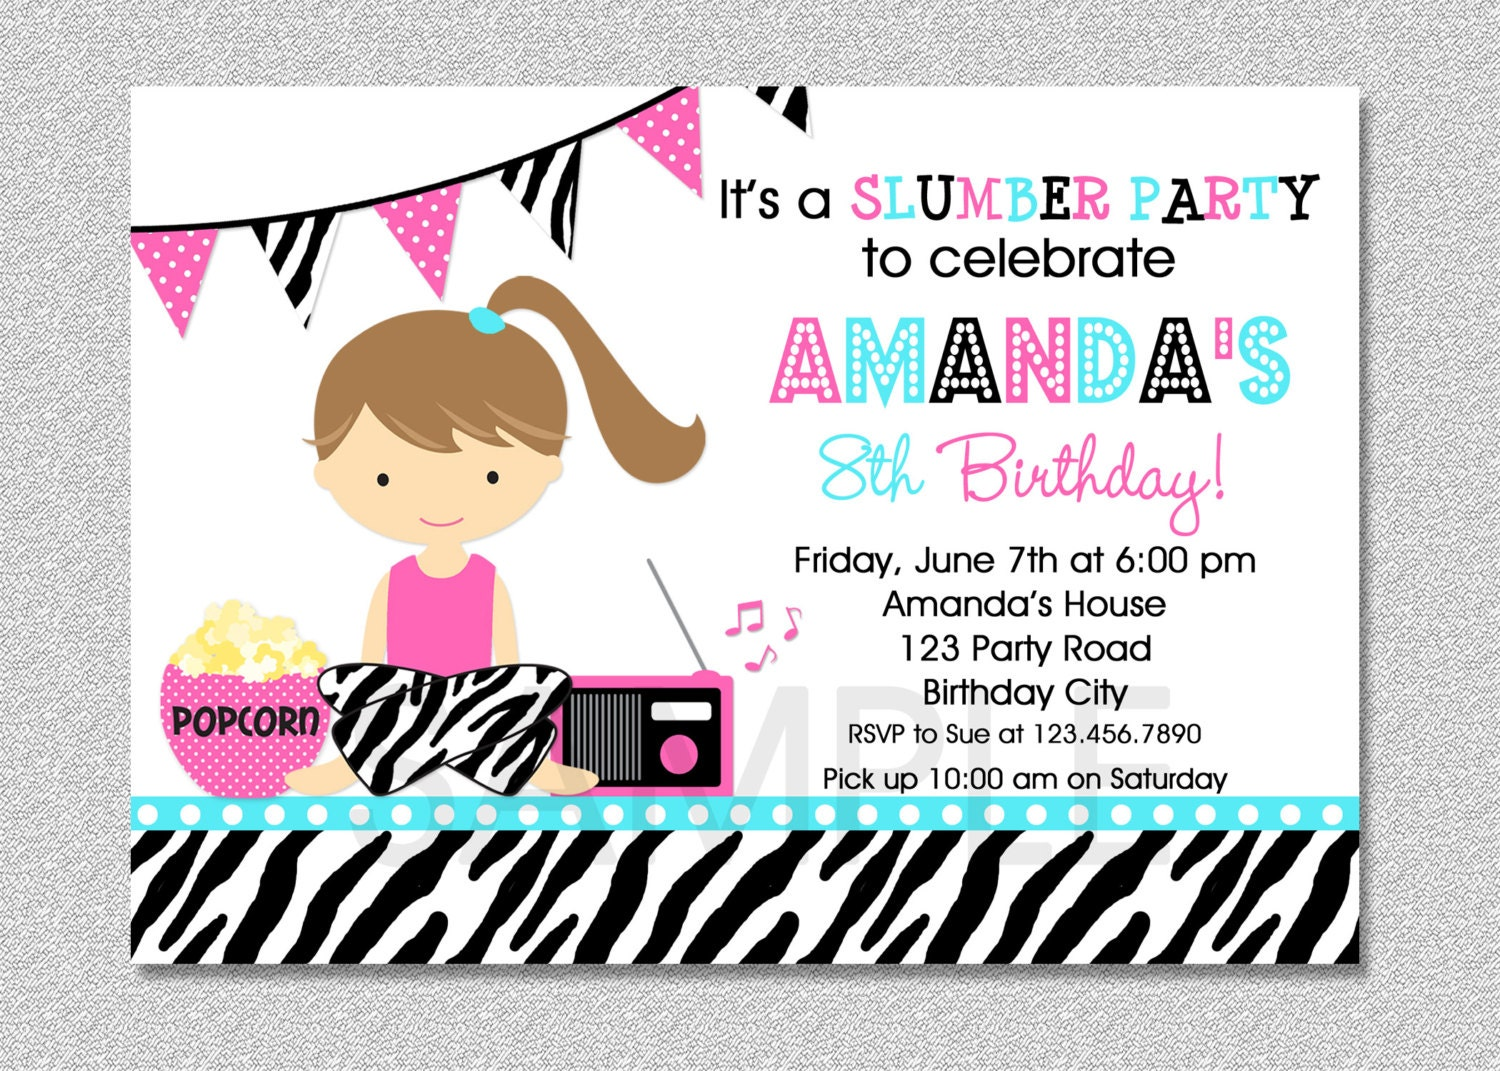 Sleepover Pajama Party Invitation Slumber Birthday